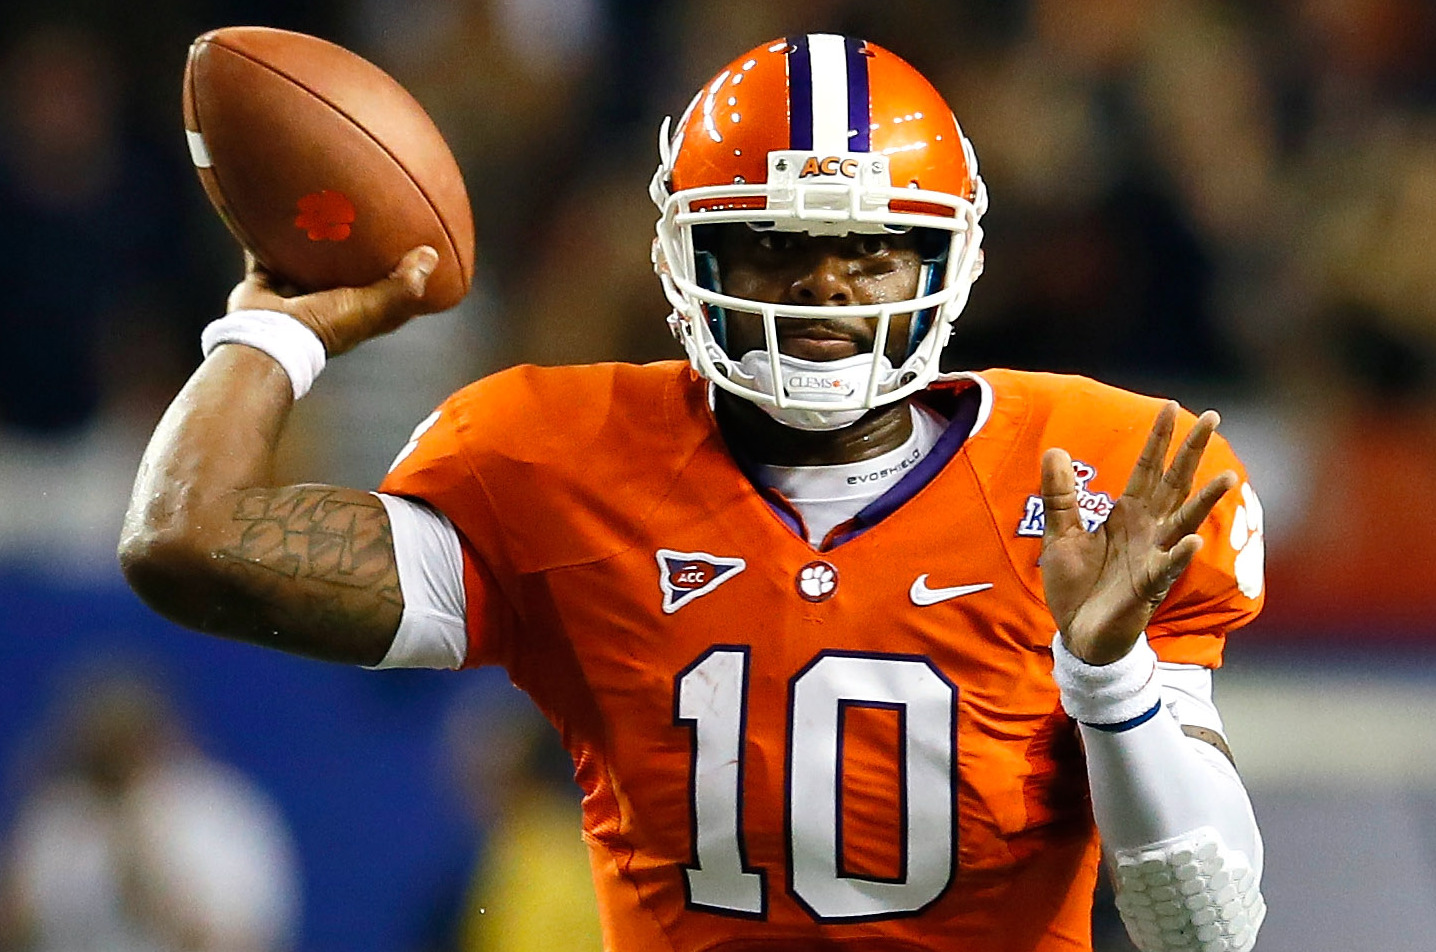 Clemson Vs Boston College Tv Schedule Live Stream Radio Game Time And More Bleacher Report Latest News Videos And Highlights